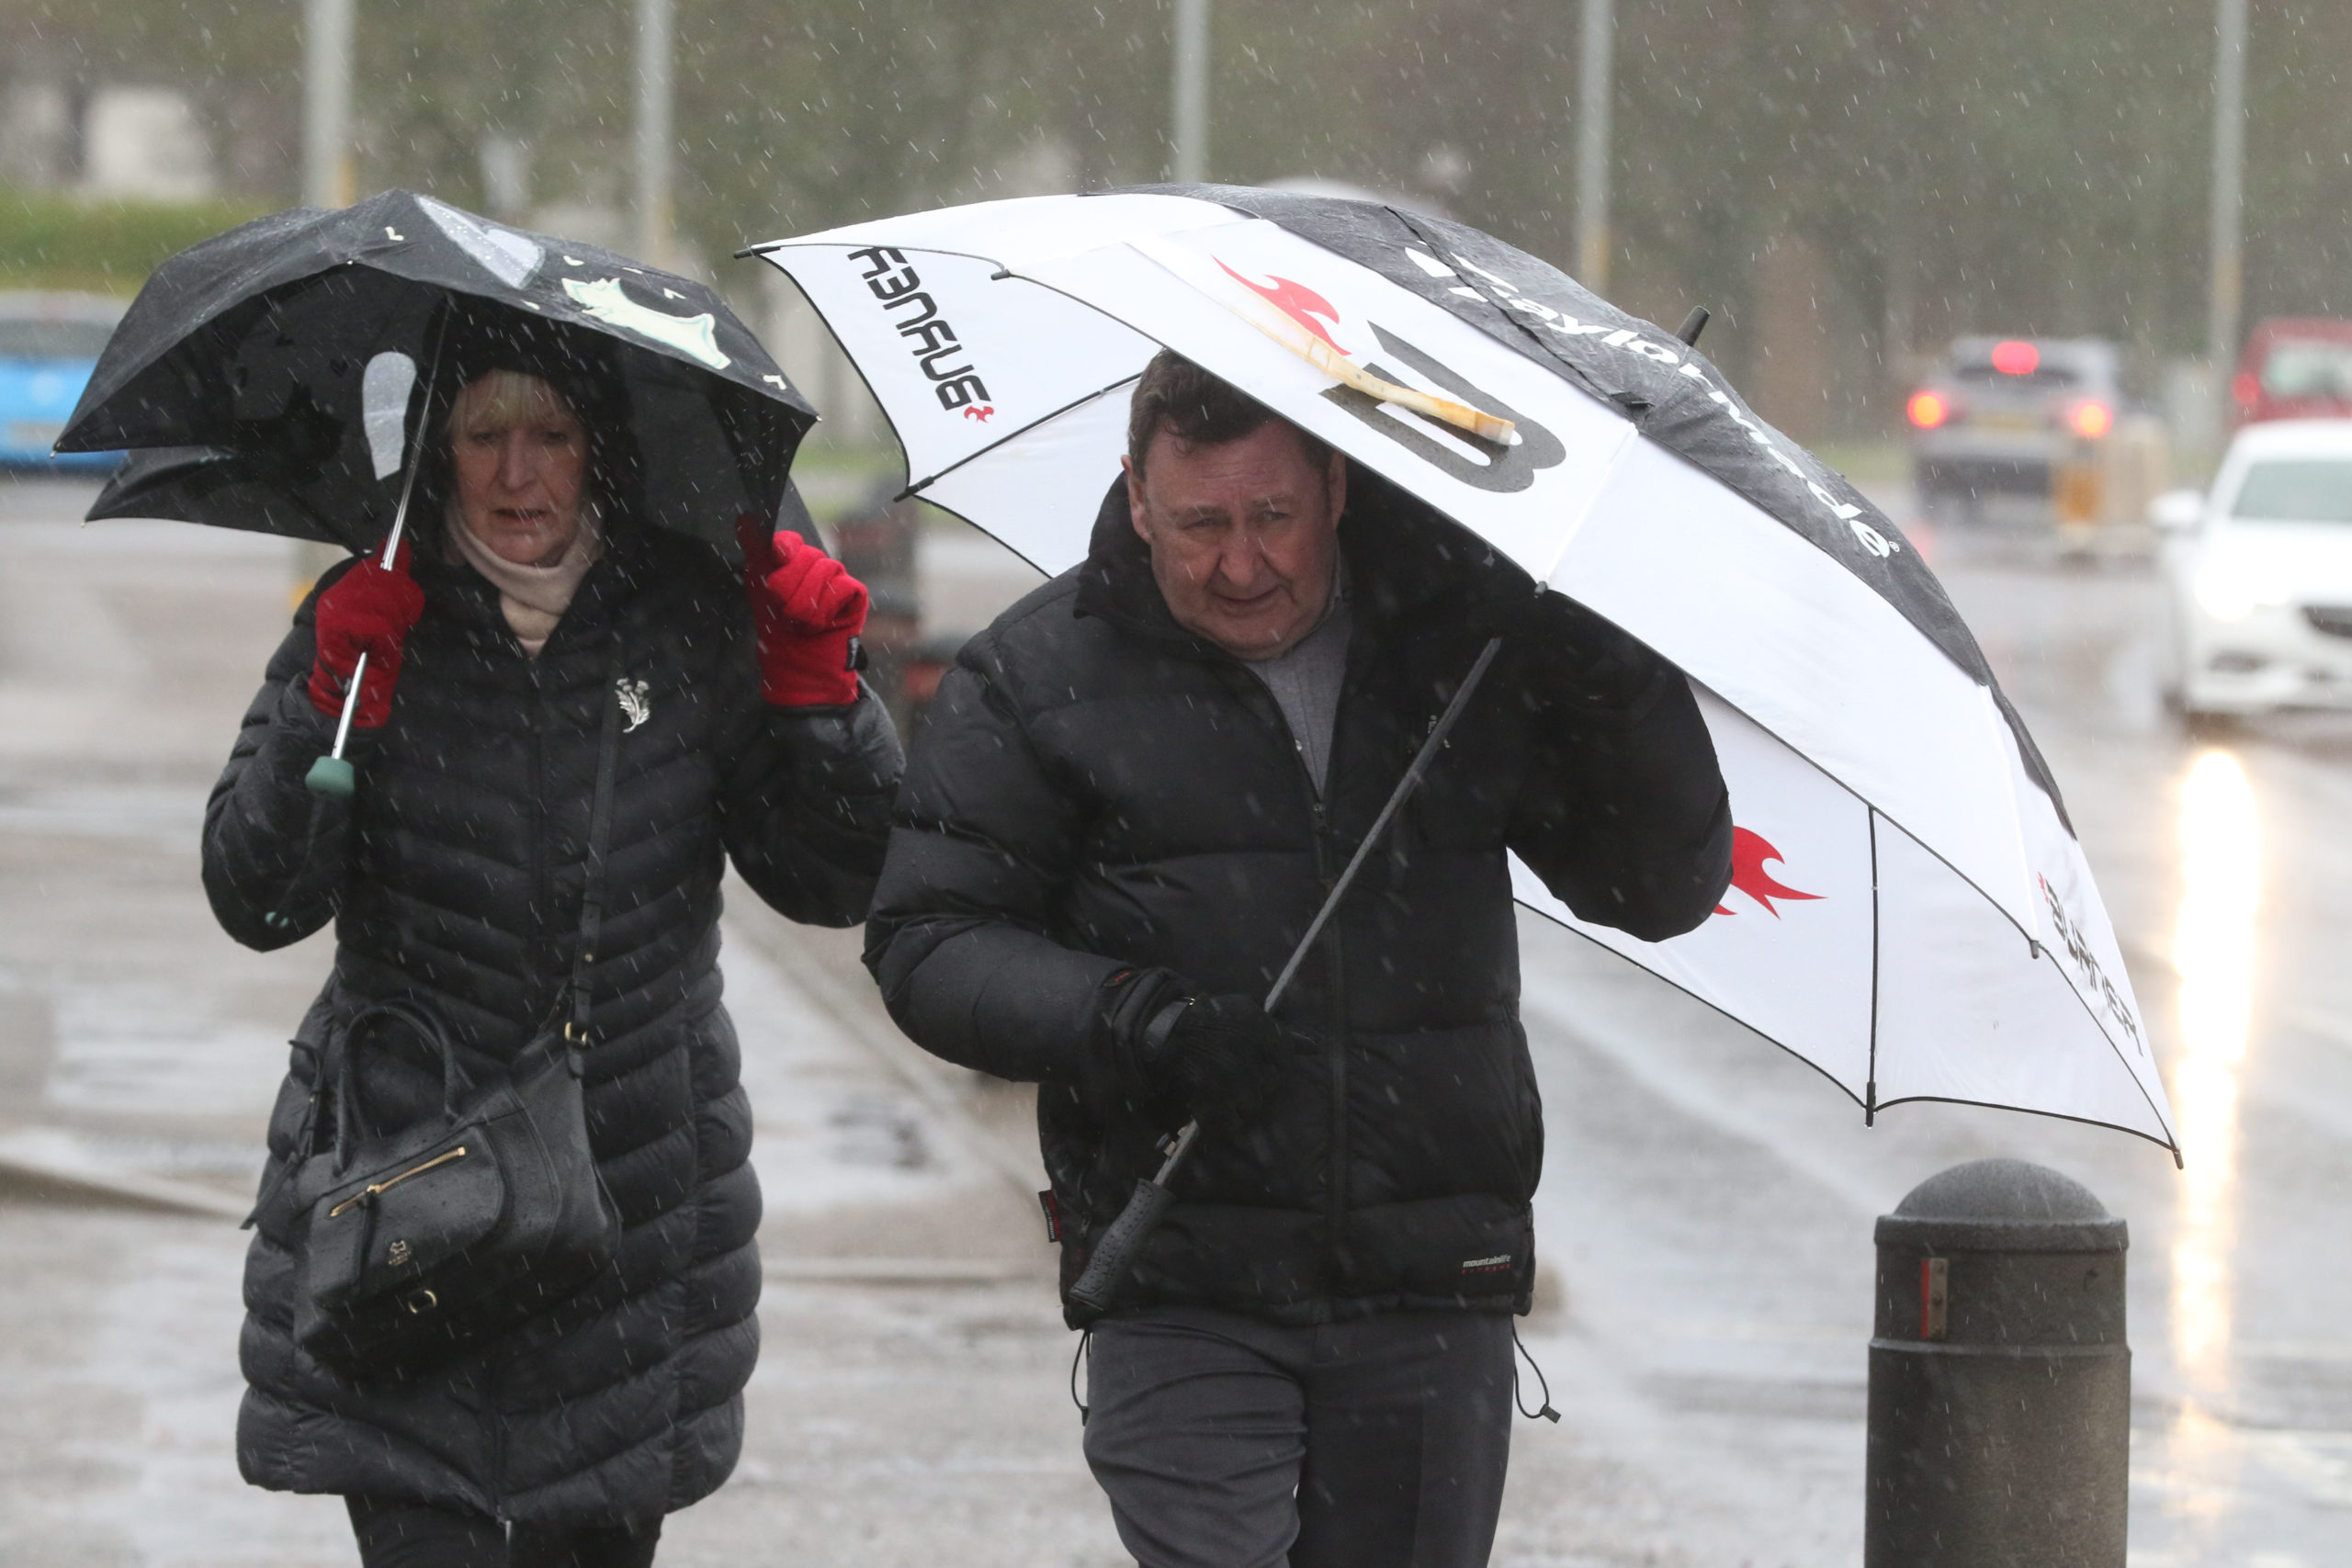 Inverness, UK, 9 February 2020. Two people walk in heavy rain and strong winds on the A96 in Nairn. Credit: Andrew Smith